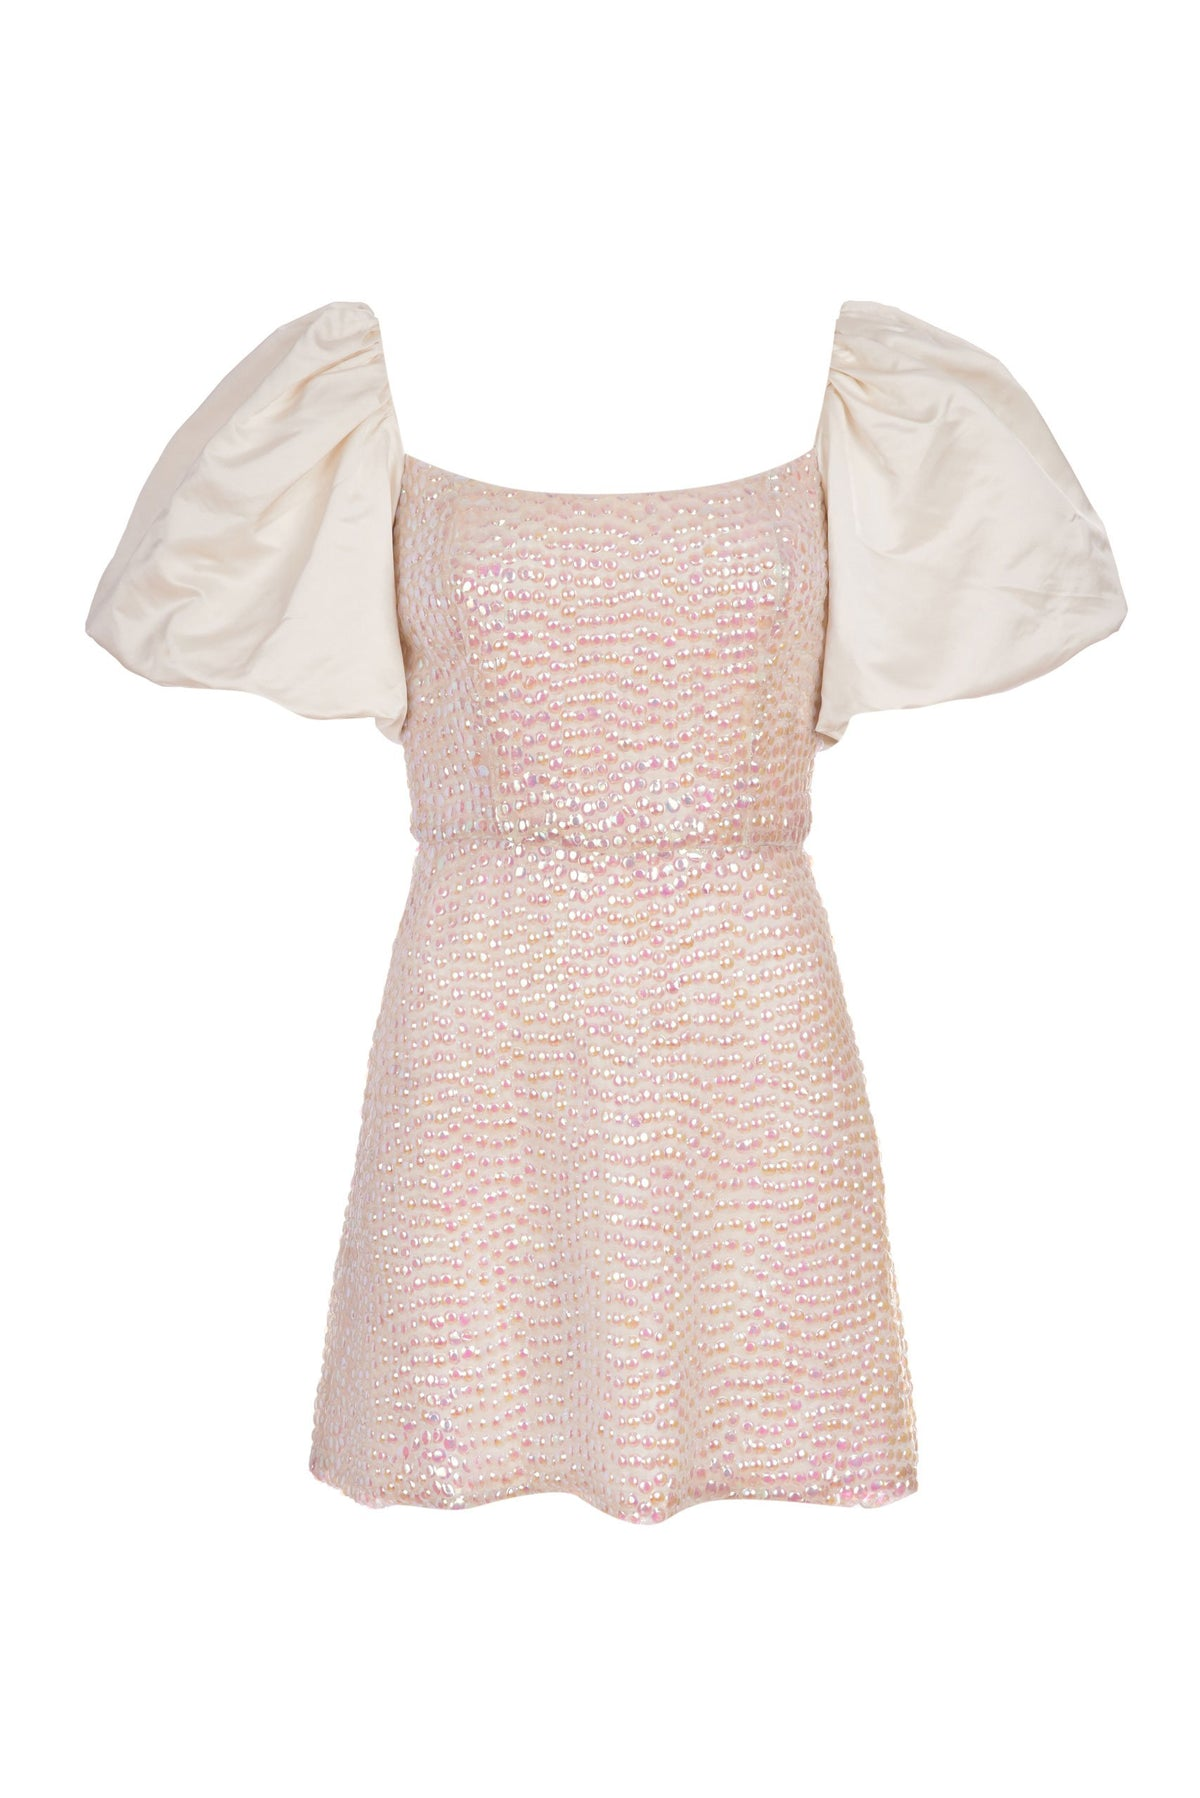 Cupid Opal Sequin-Embellished Duchess Satin Puff Sleeve Mini Dress